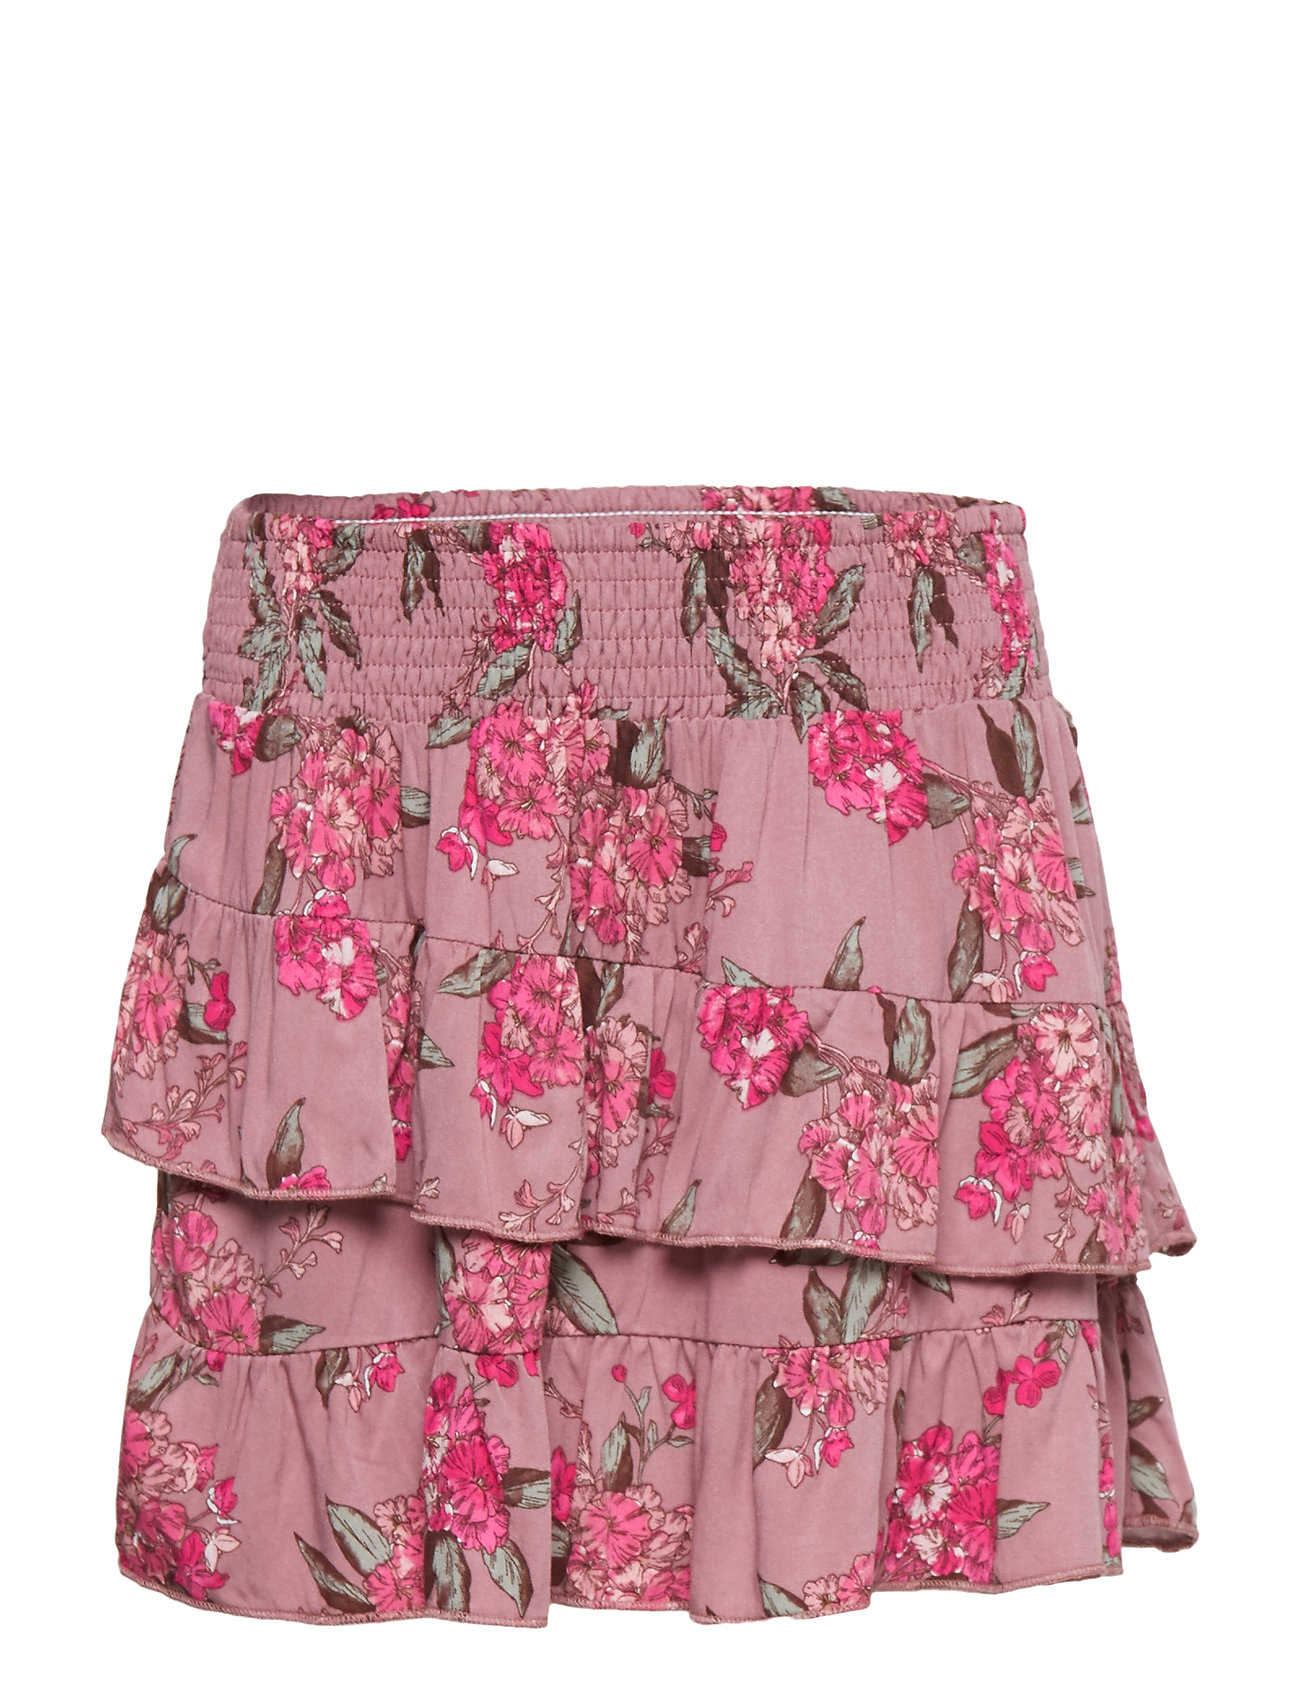 a3f4c0e73d6 Skirt (Aop Pearlflower) (£42) - Petit by Sofie Schnoor - | Boozt.com